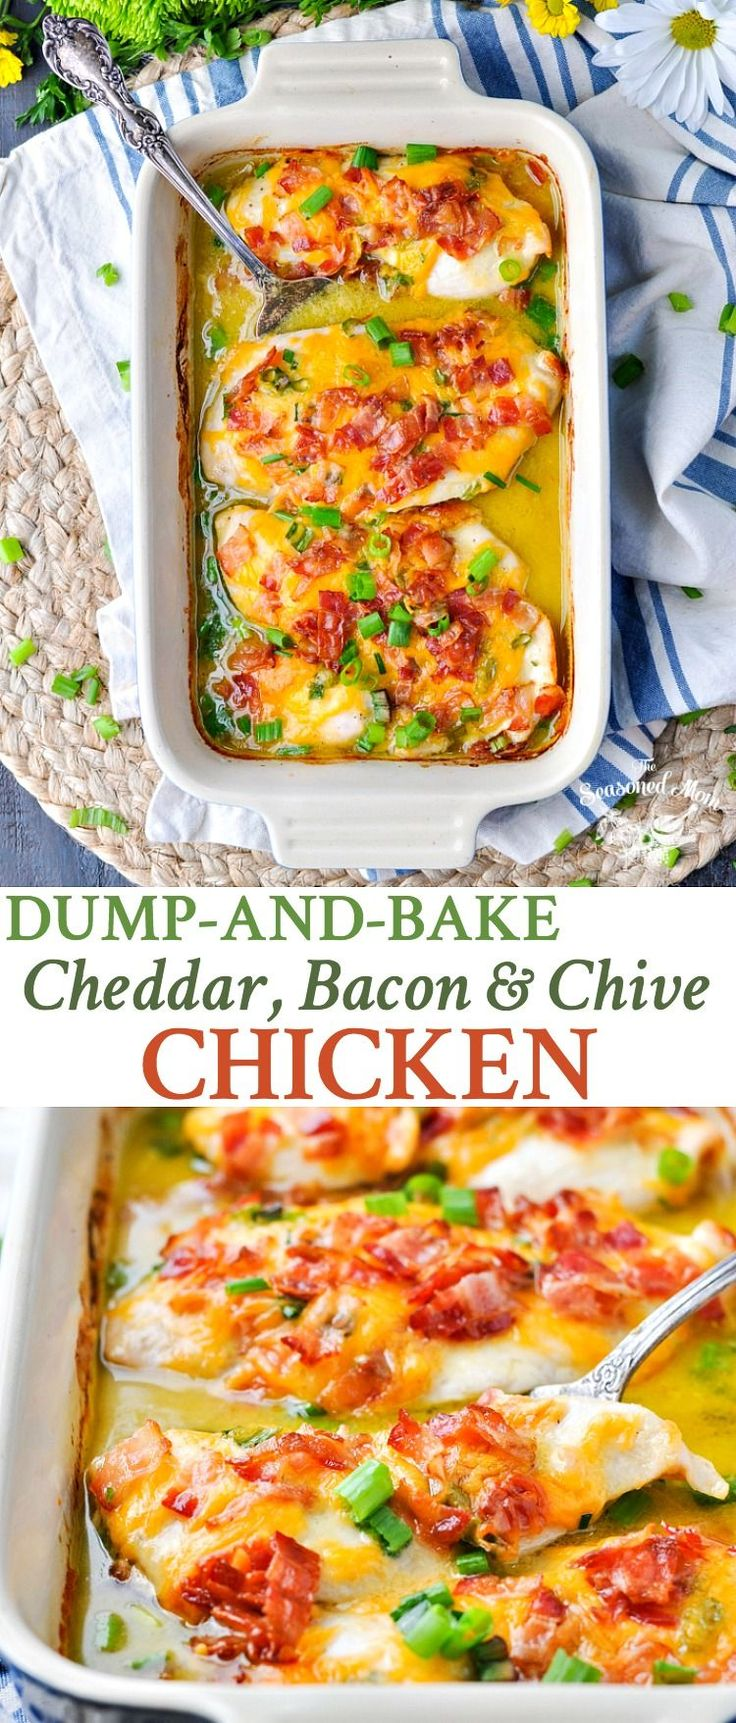 Dump-and-Bake Cheddar, Bacon & Chive Chicken Breast Recipe | Easy Dinner Recipes | Dinner Ideas | Chicken Recipes | Baked Chicken | Baked Chicken Recipes